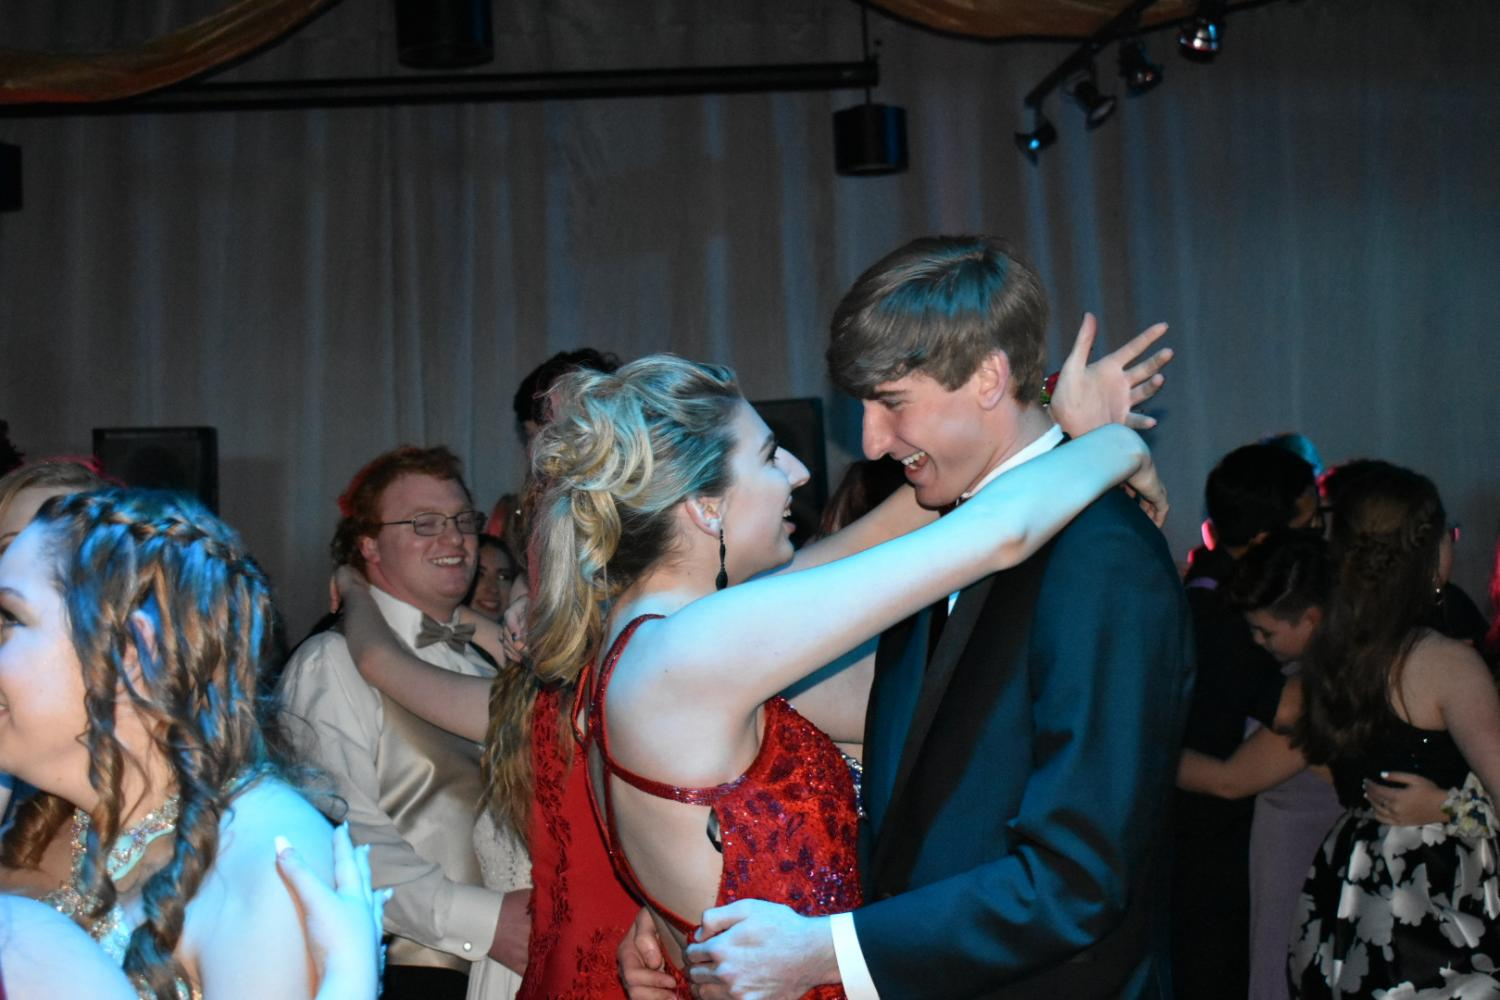 Senior+Will+McOuat+and+Scarlett+Moore+dance+together+at+prom.+